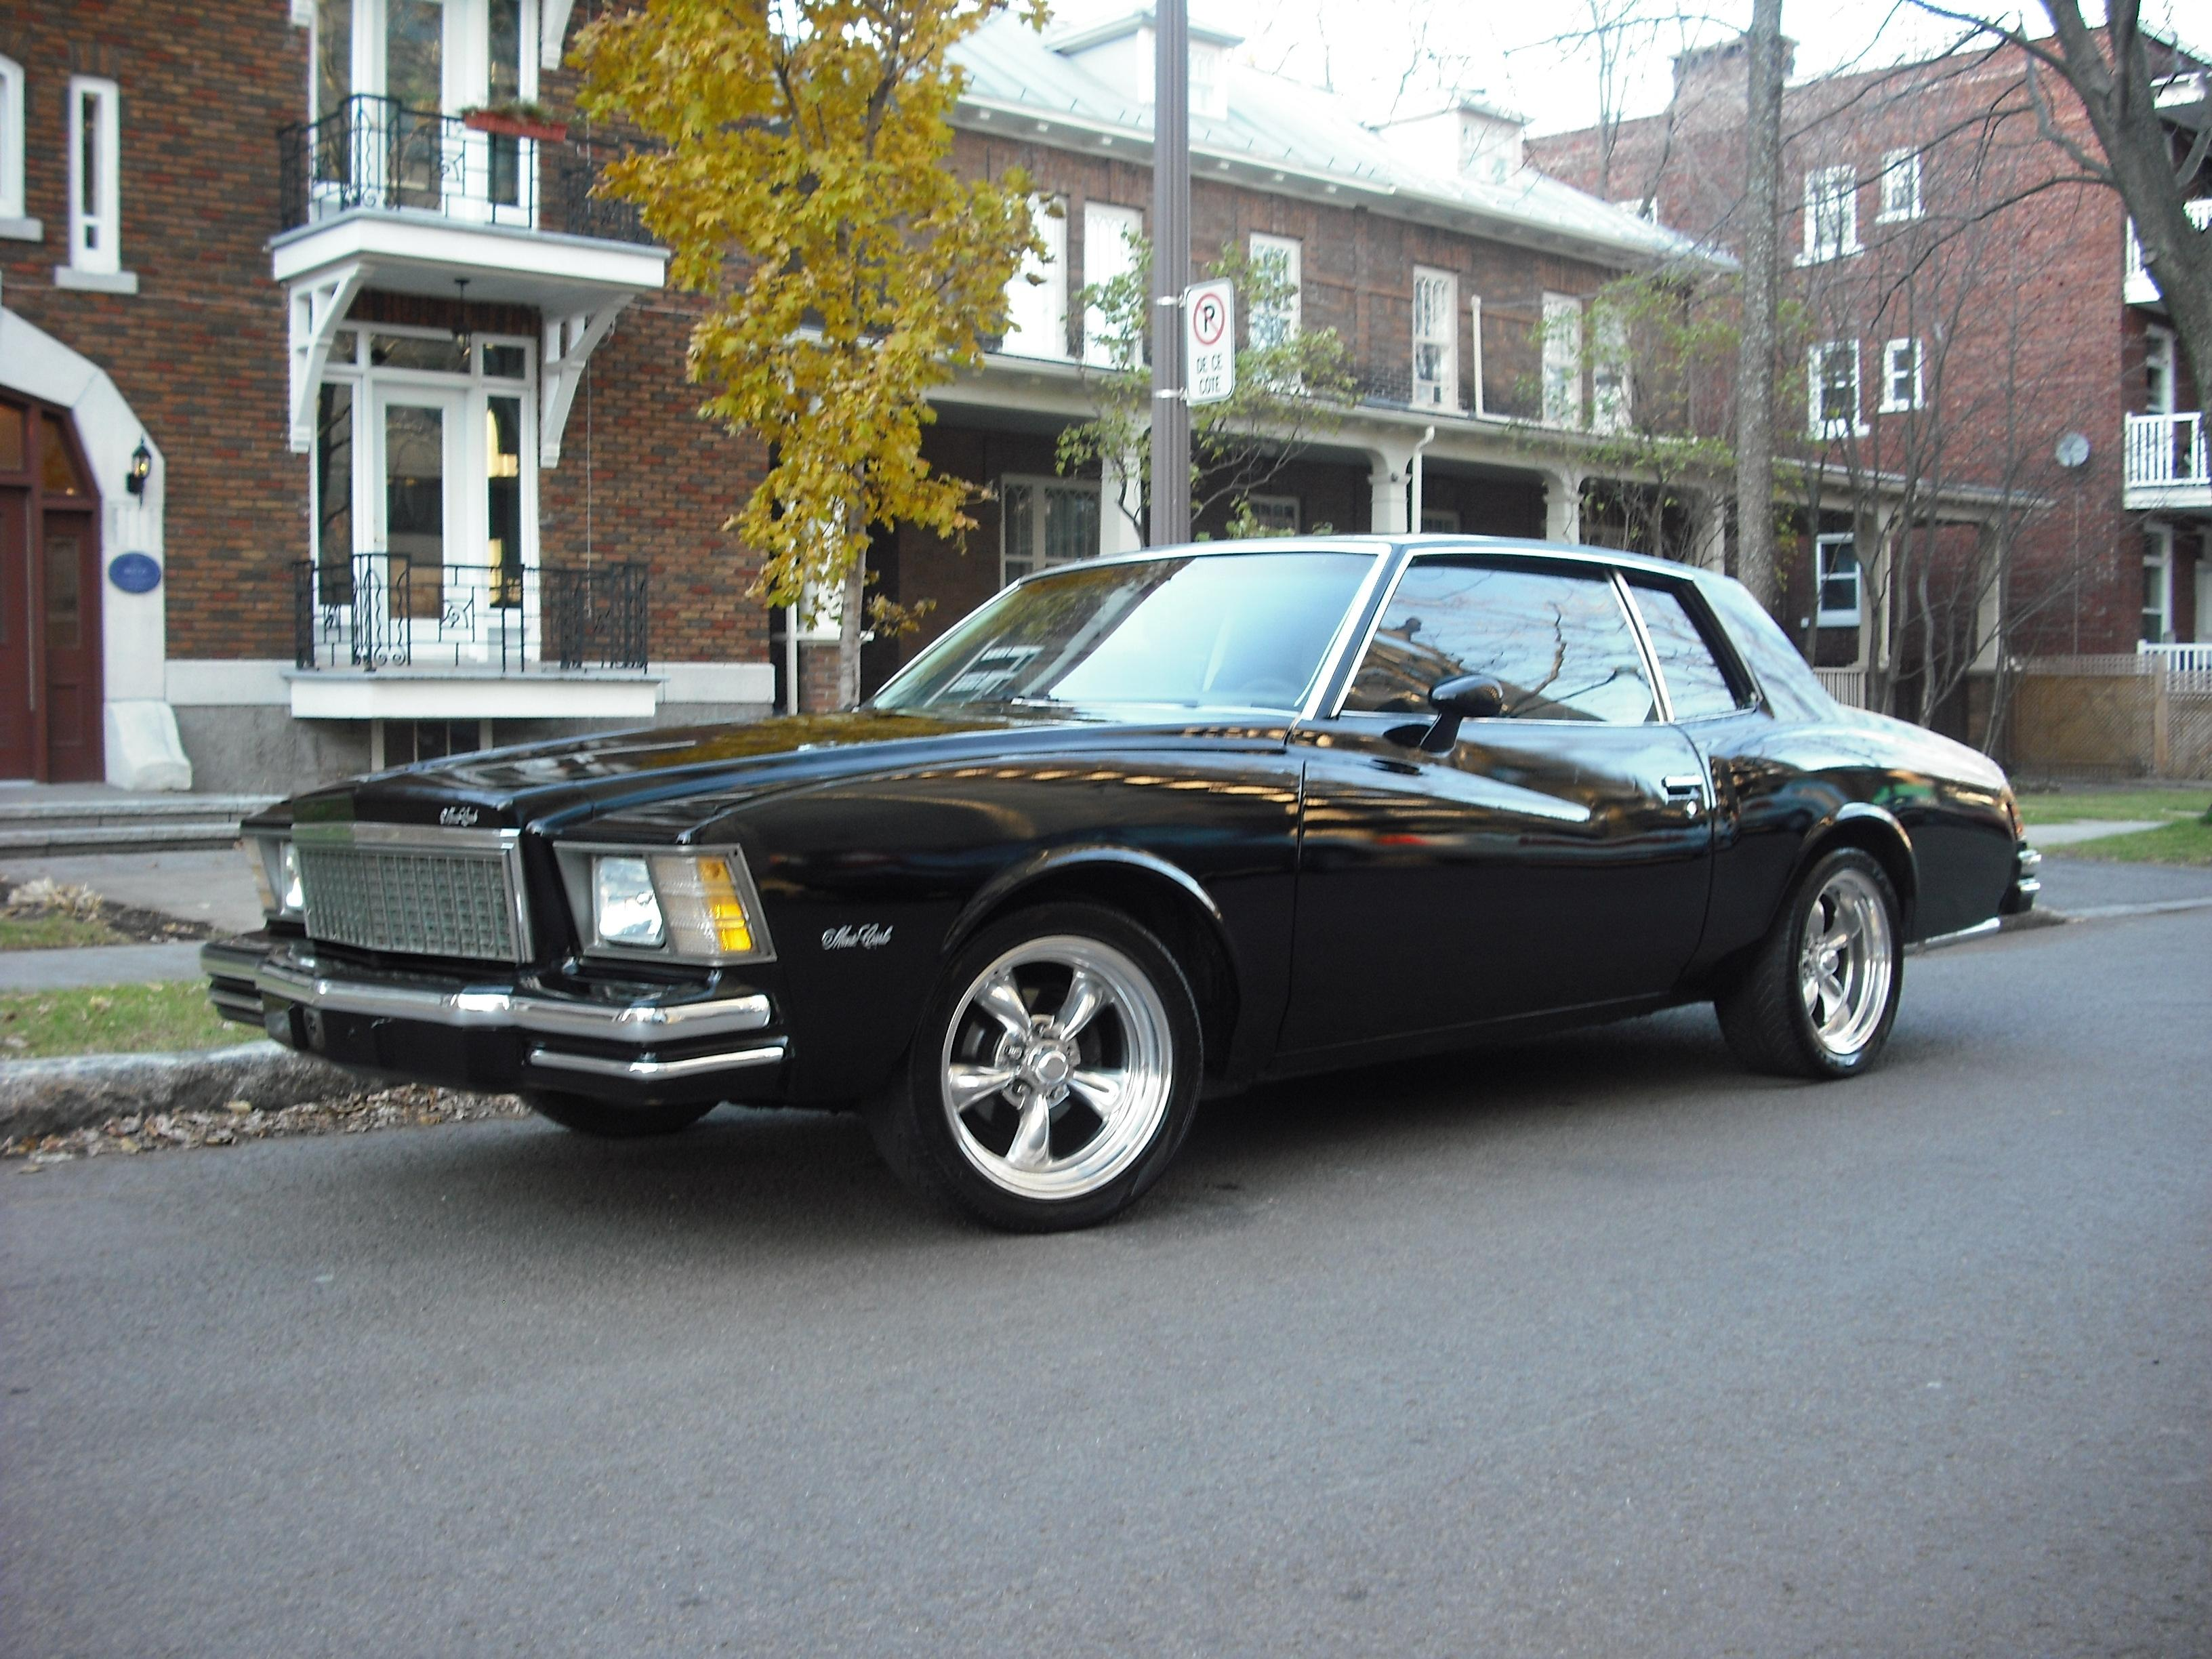 1979 Chevrolet Monte Carlo Information And Photos